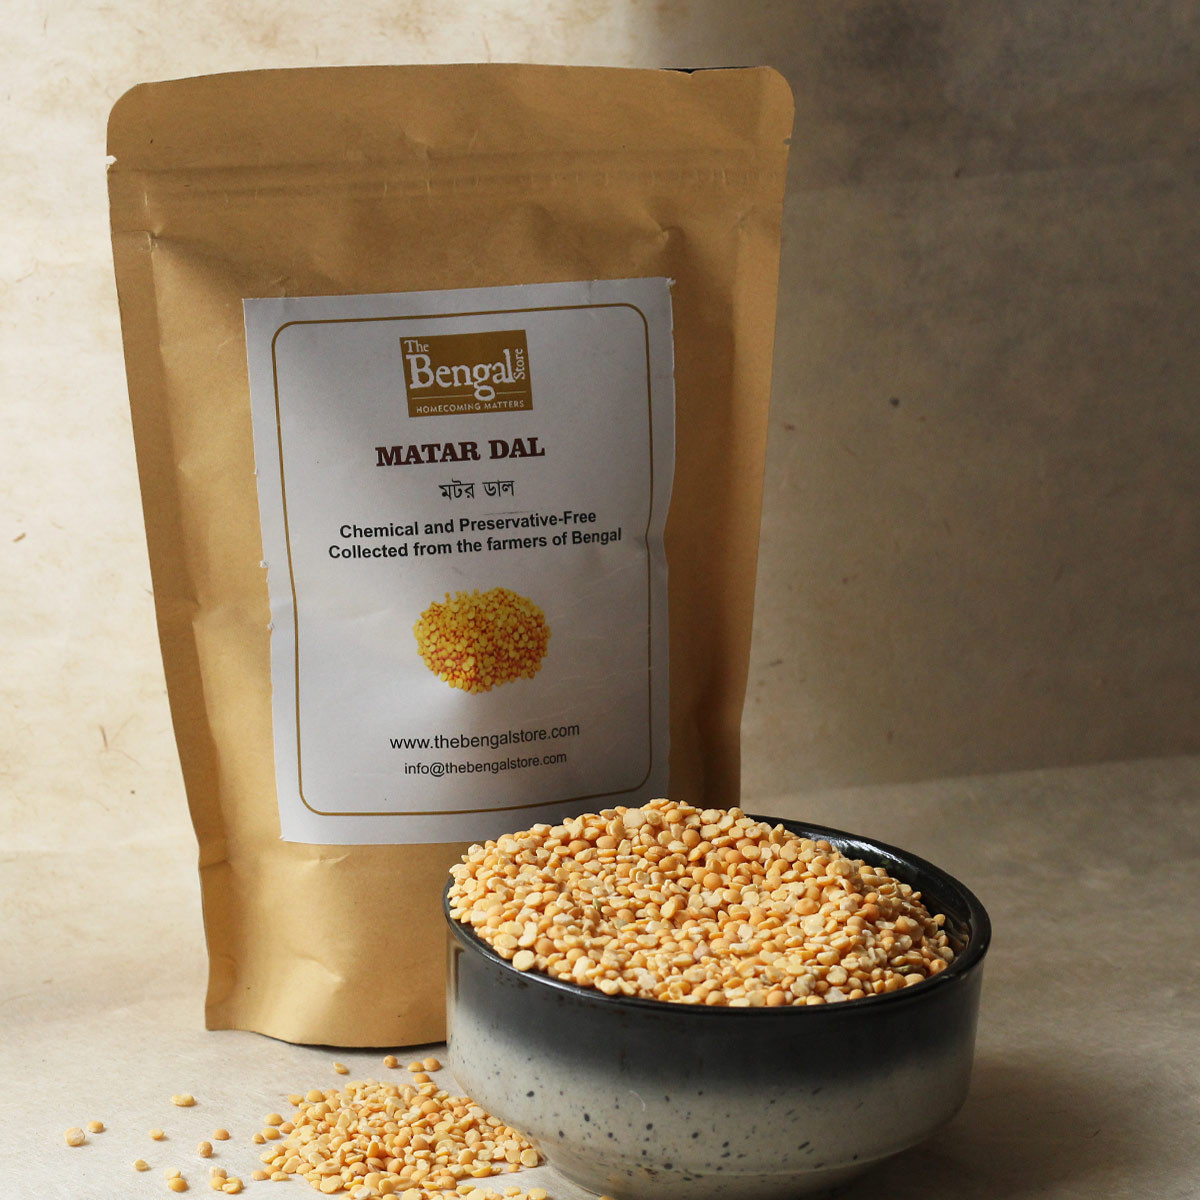 Matar Dal (500g)- Chemical and Preservative-Free